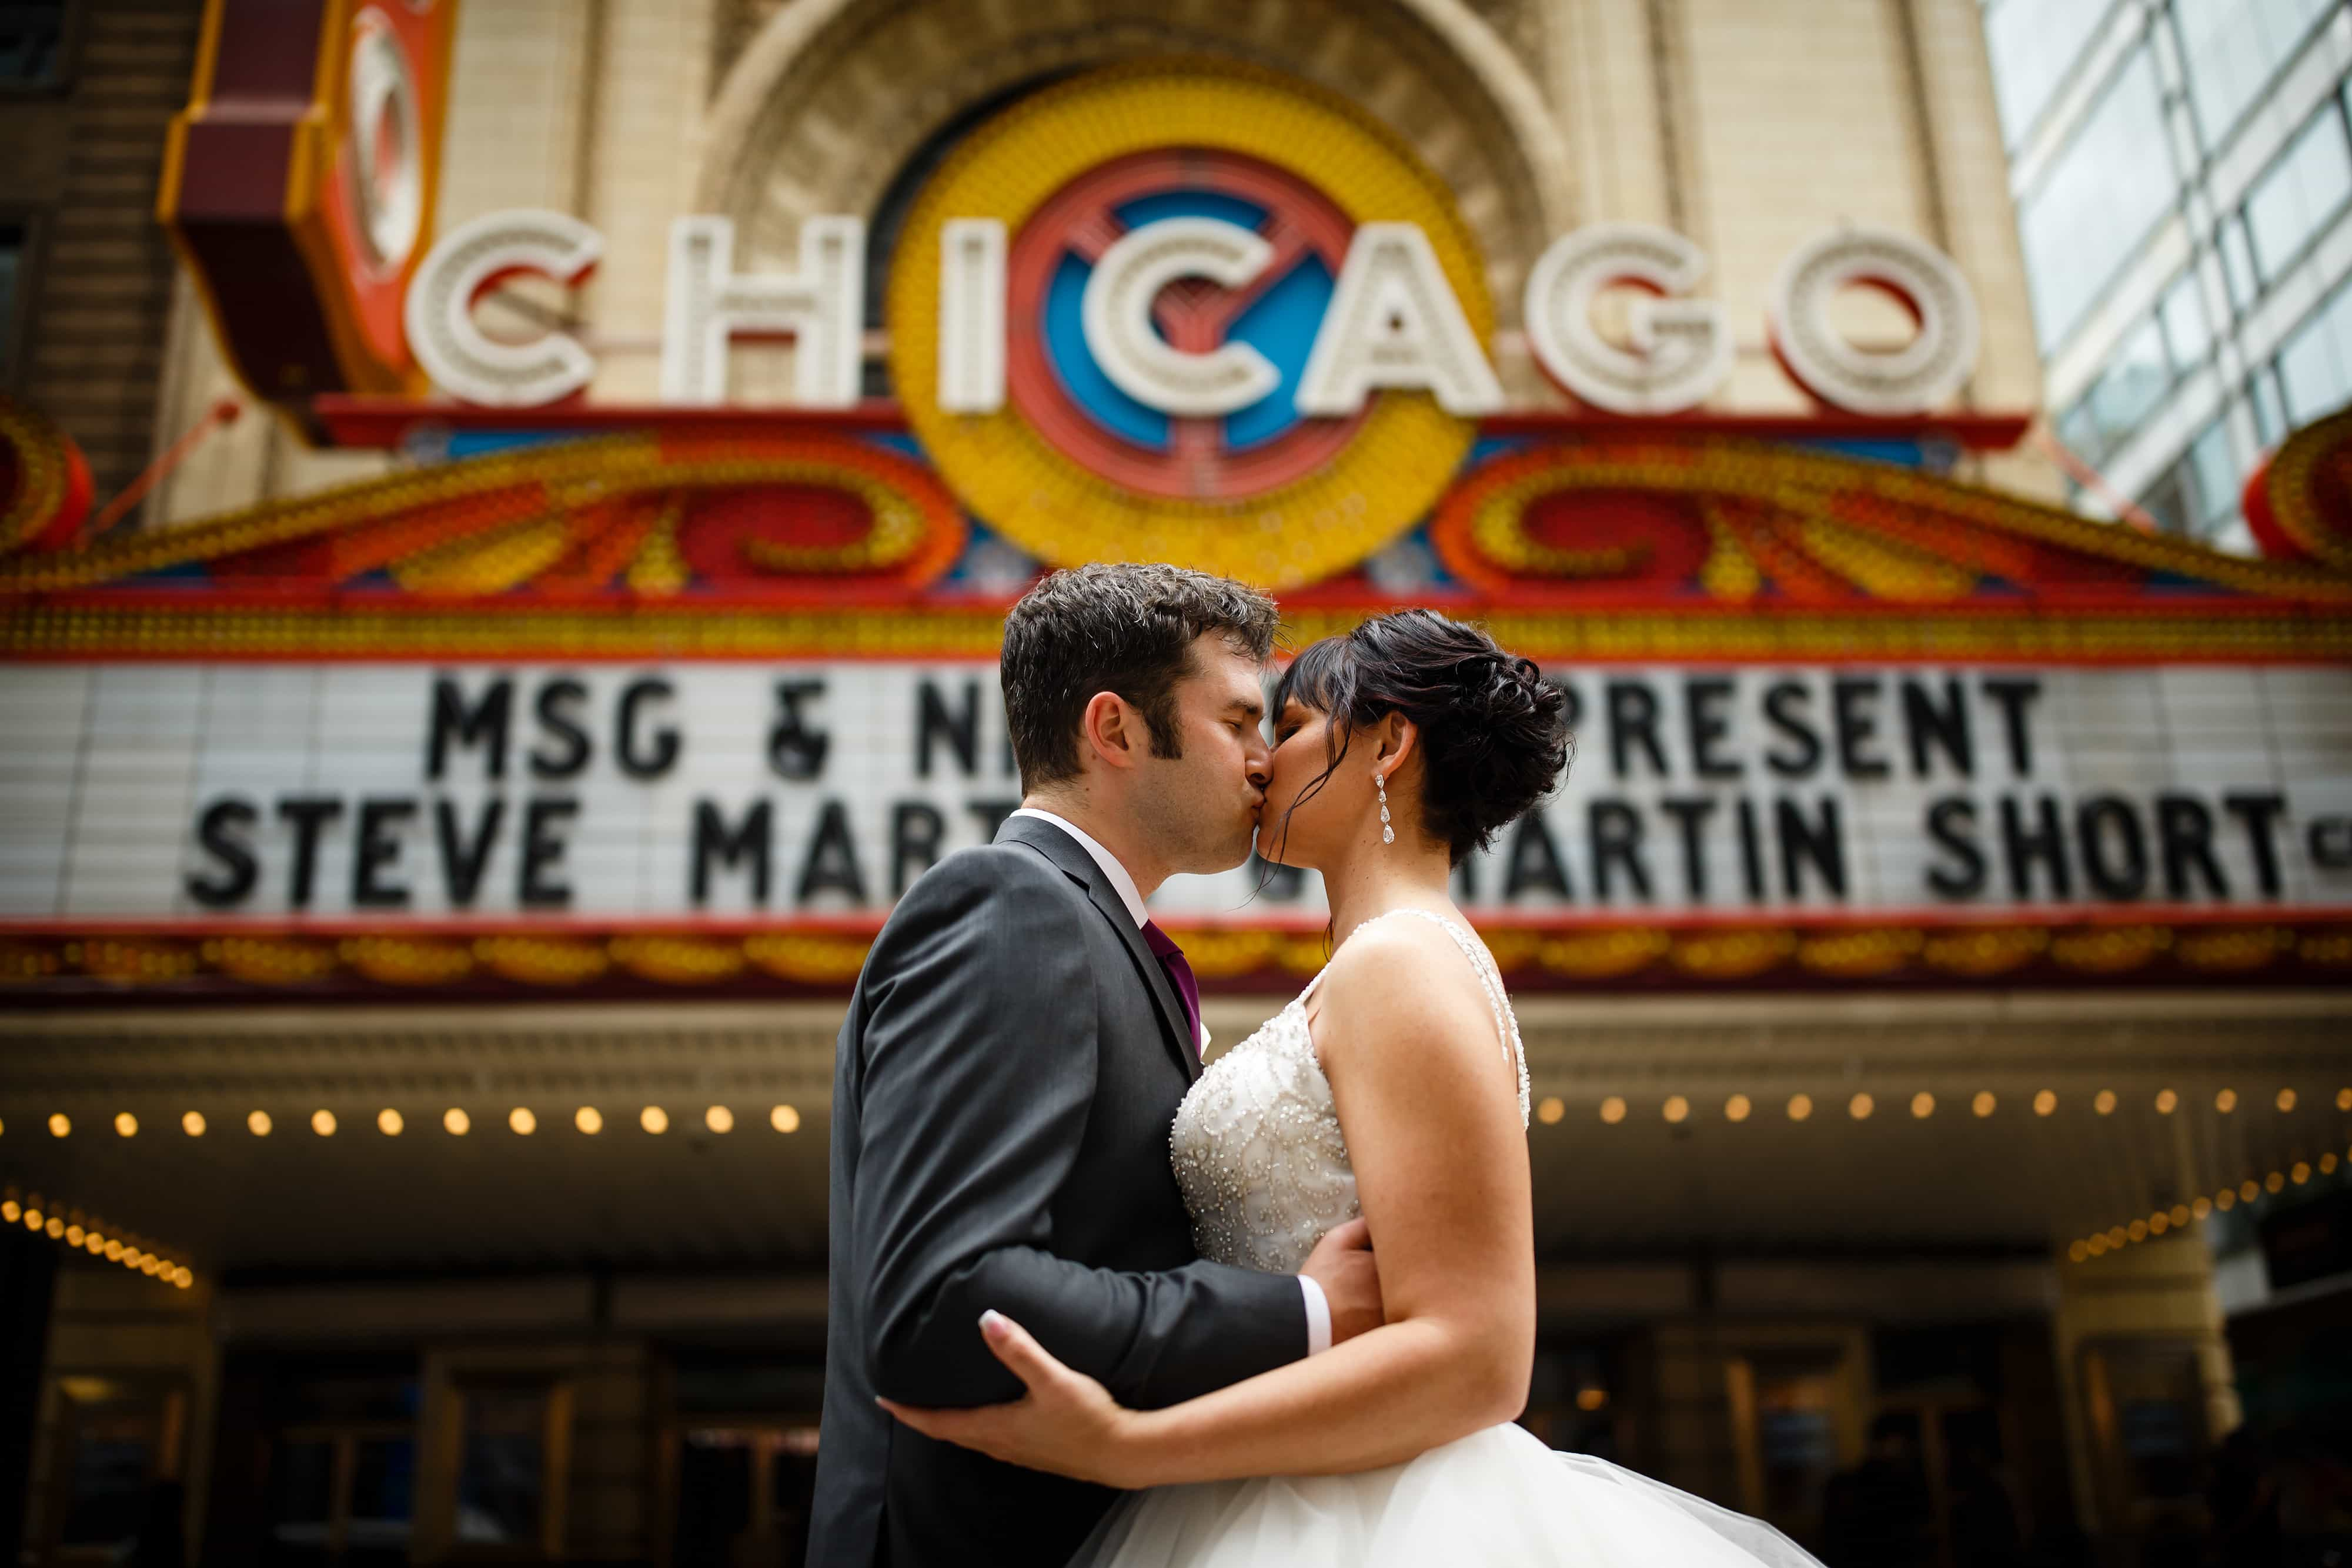 The bride and groom share a moment together outside of the Chicago Theatre during their fall wedding in October